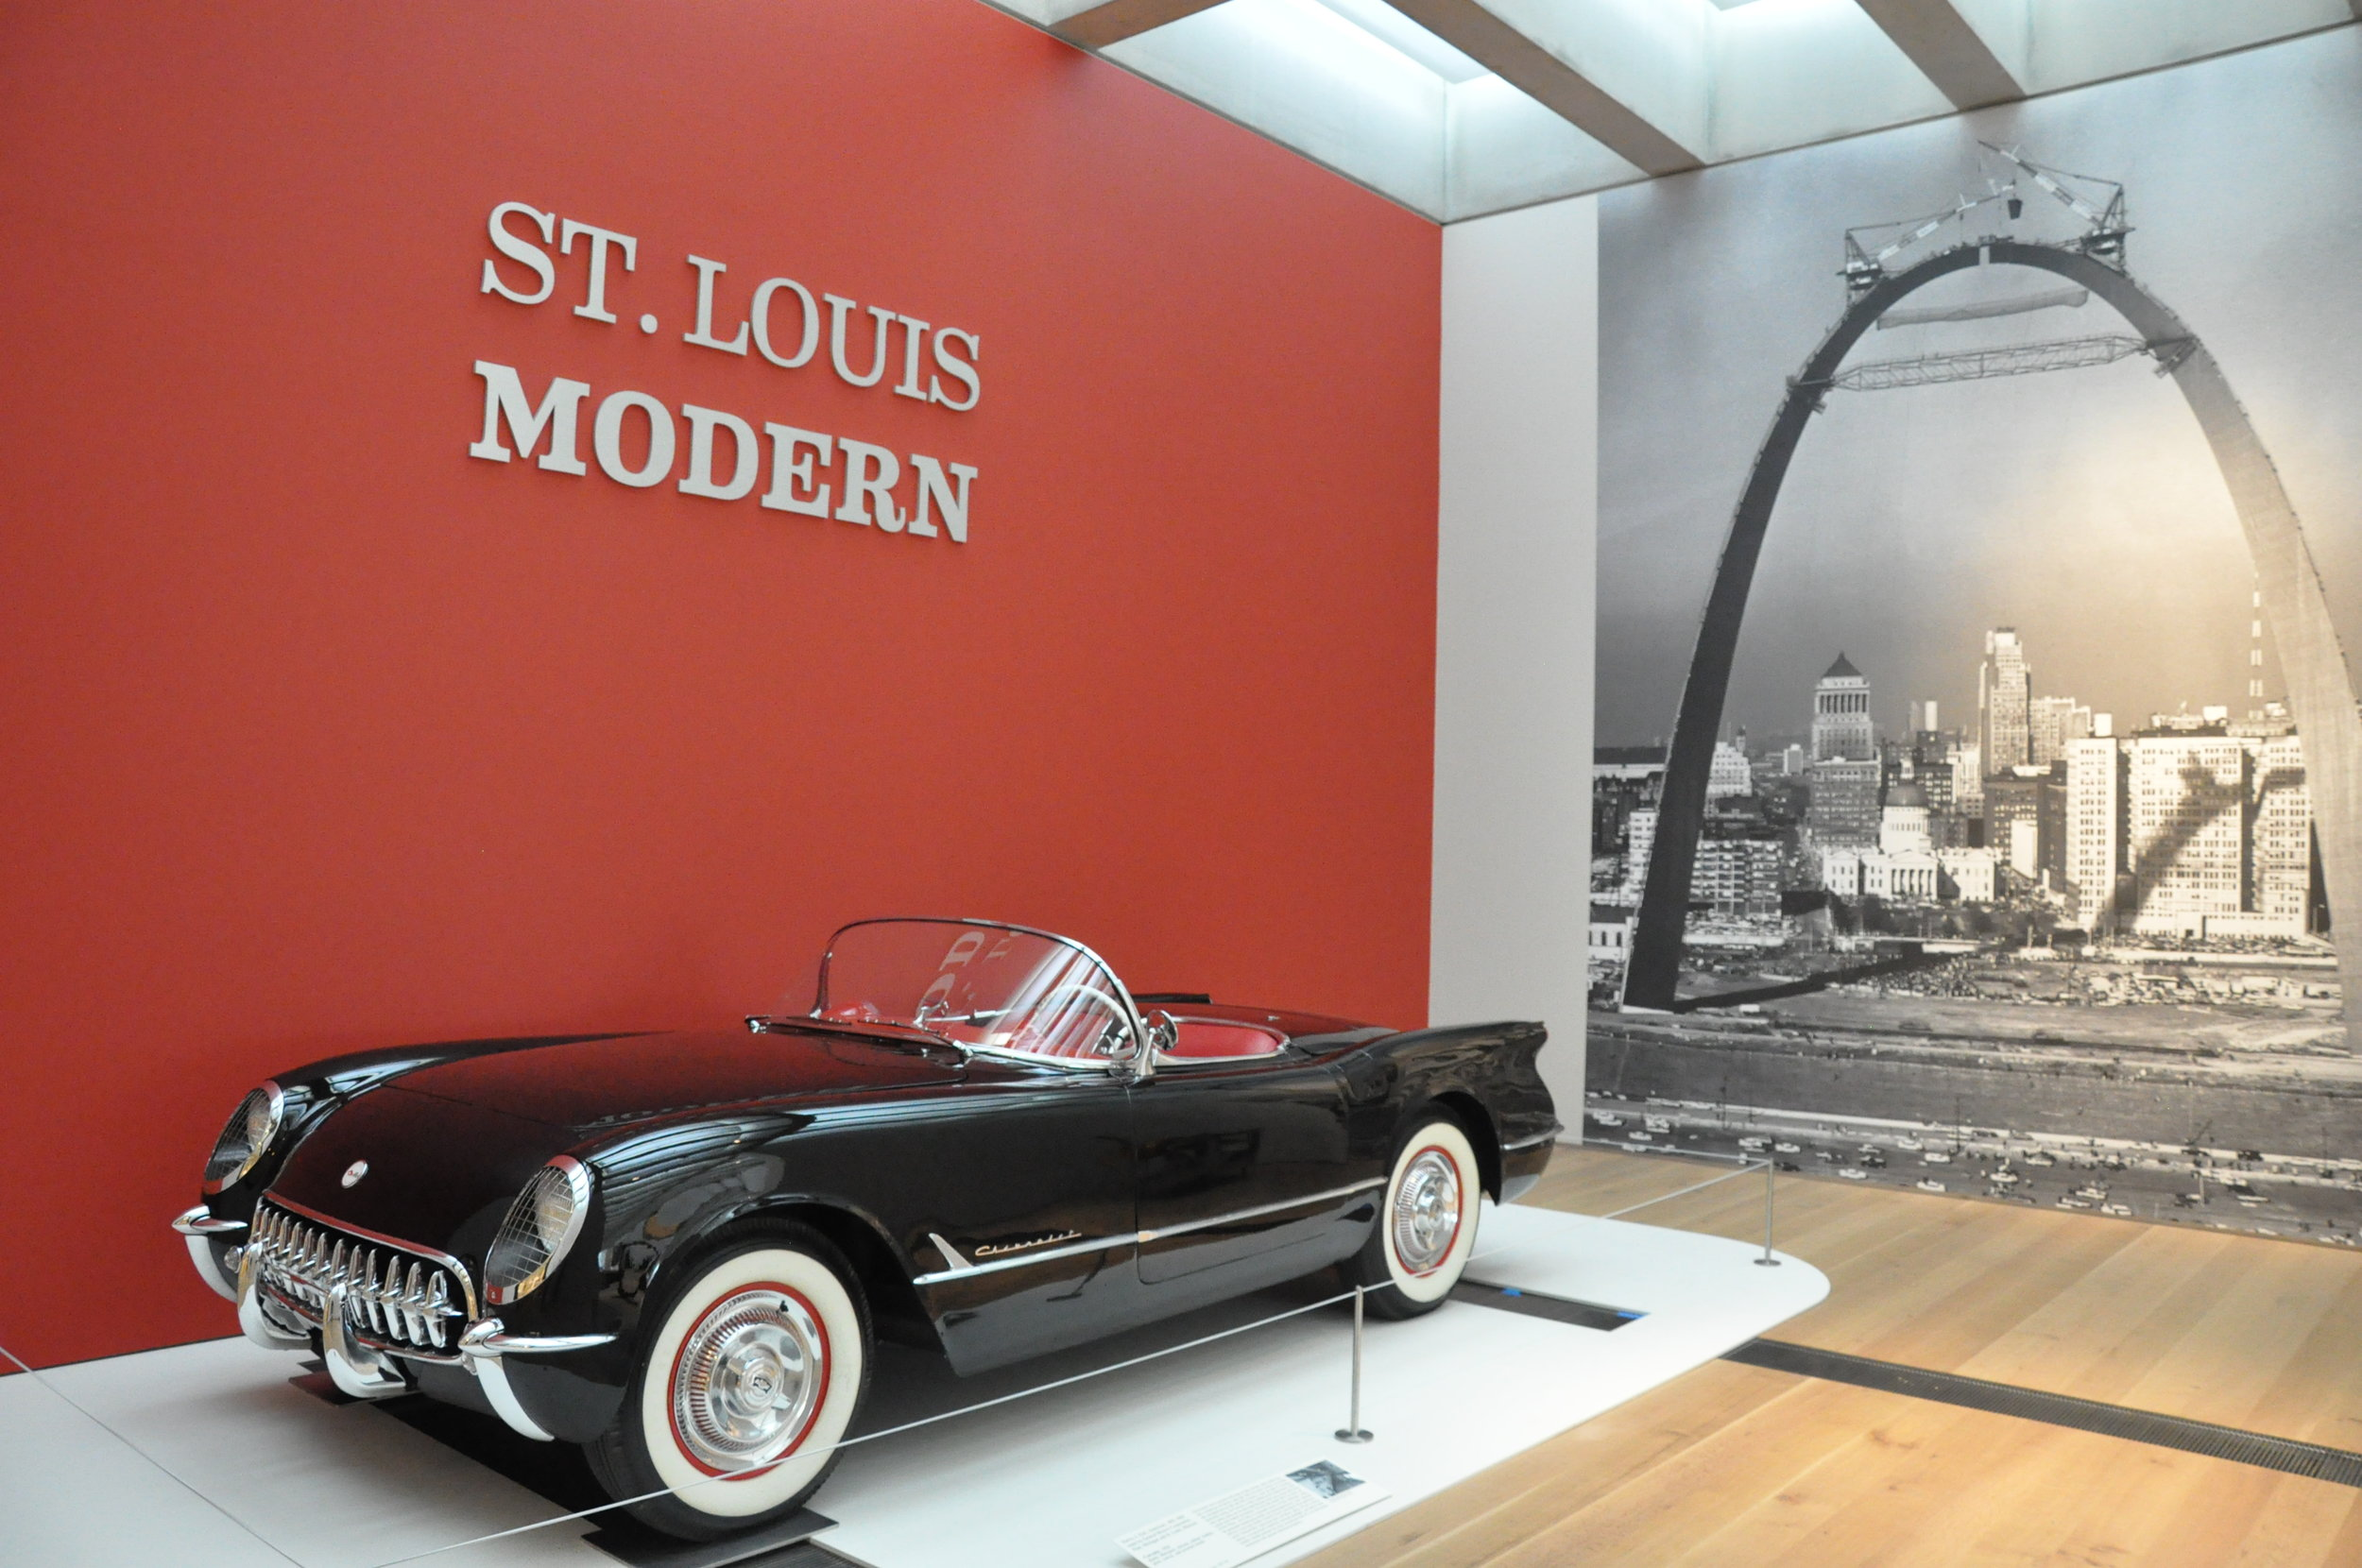 1954 CORVETTE PROVIDED ON LOAN BY HUNTER CLASSICS ST. LOUIS MISSOURI